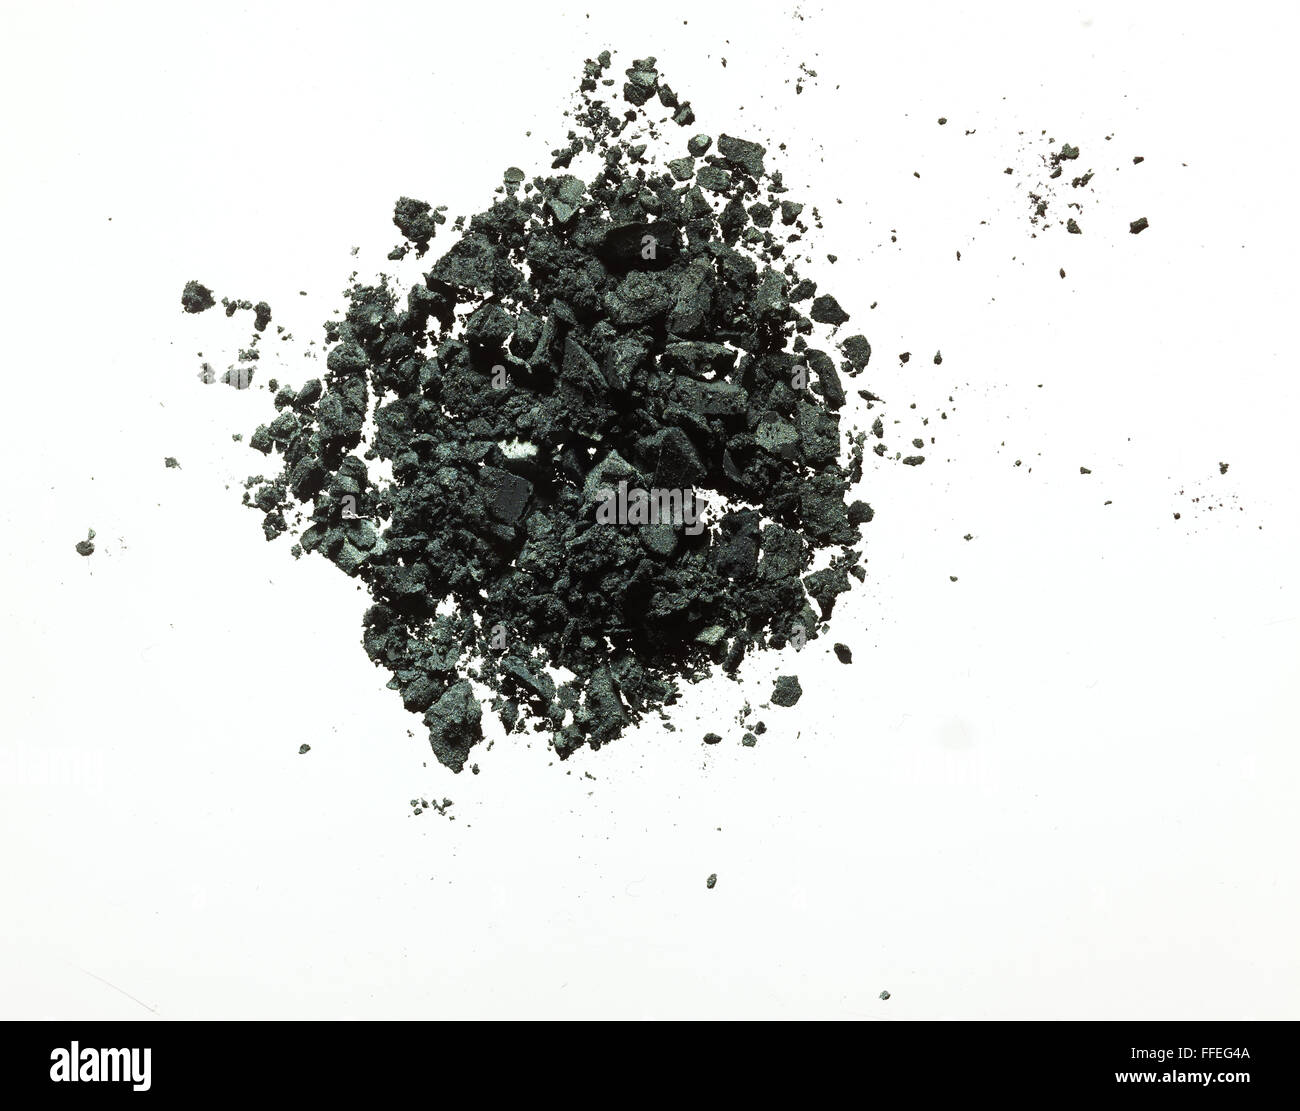 Black eyeshadow powder - Stock Image